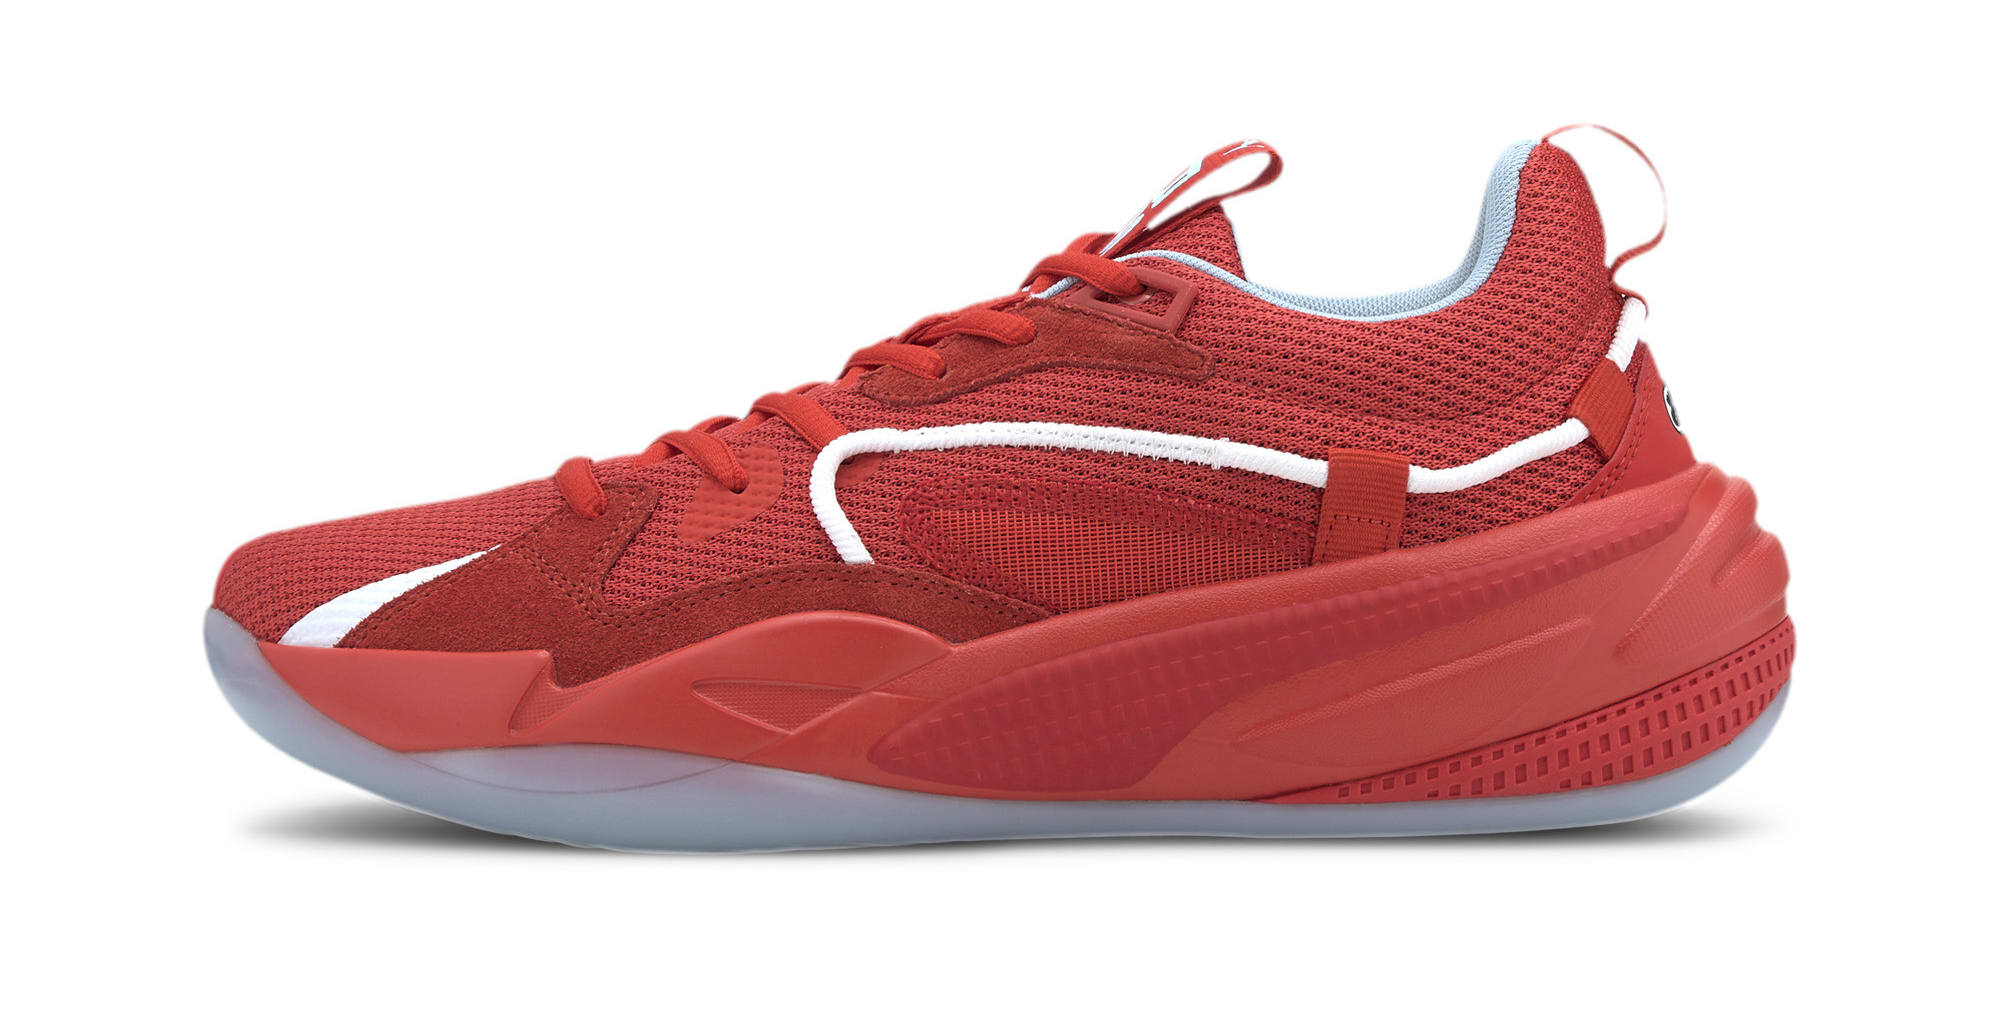 J. Cole Puma RS-Dreamer 'Blood, Sweat, and Tears' 194602-01 Lateral